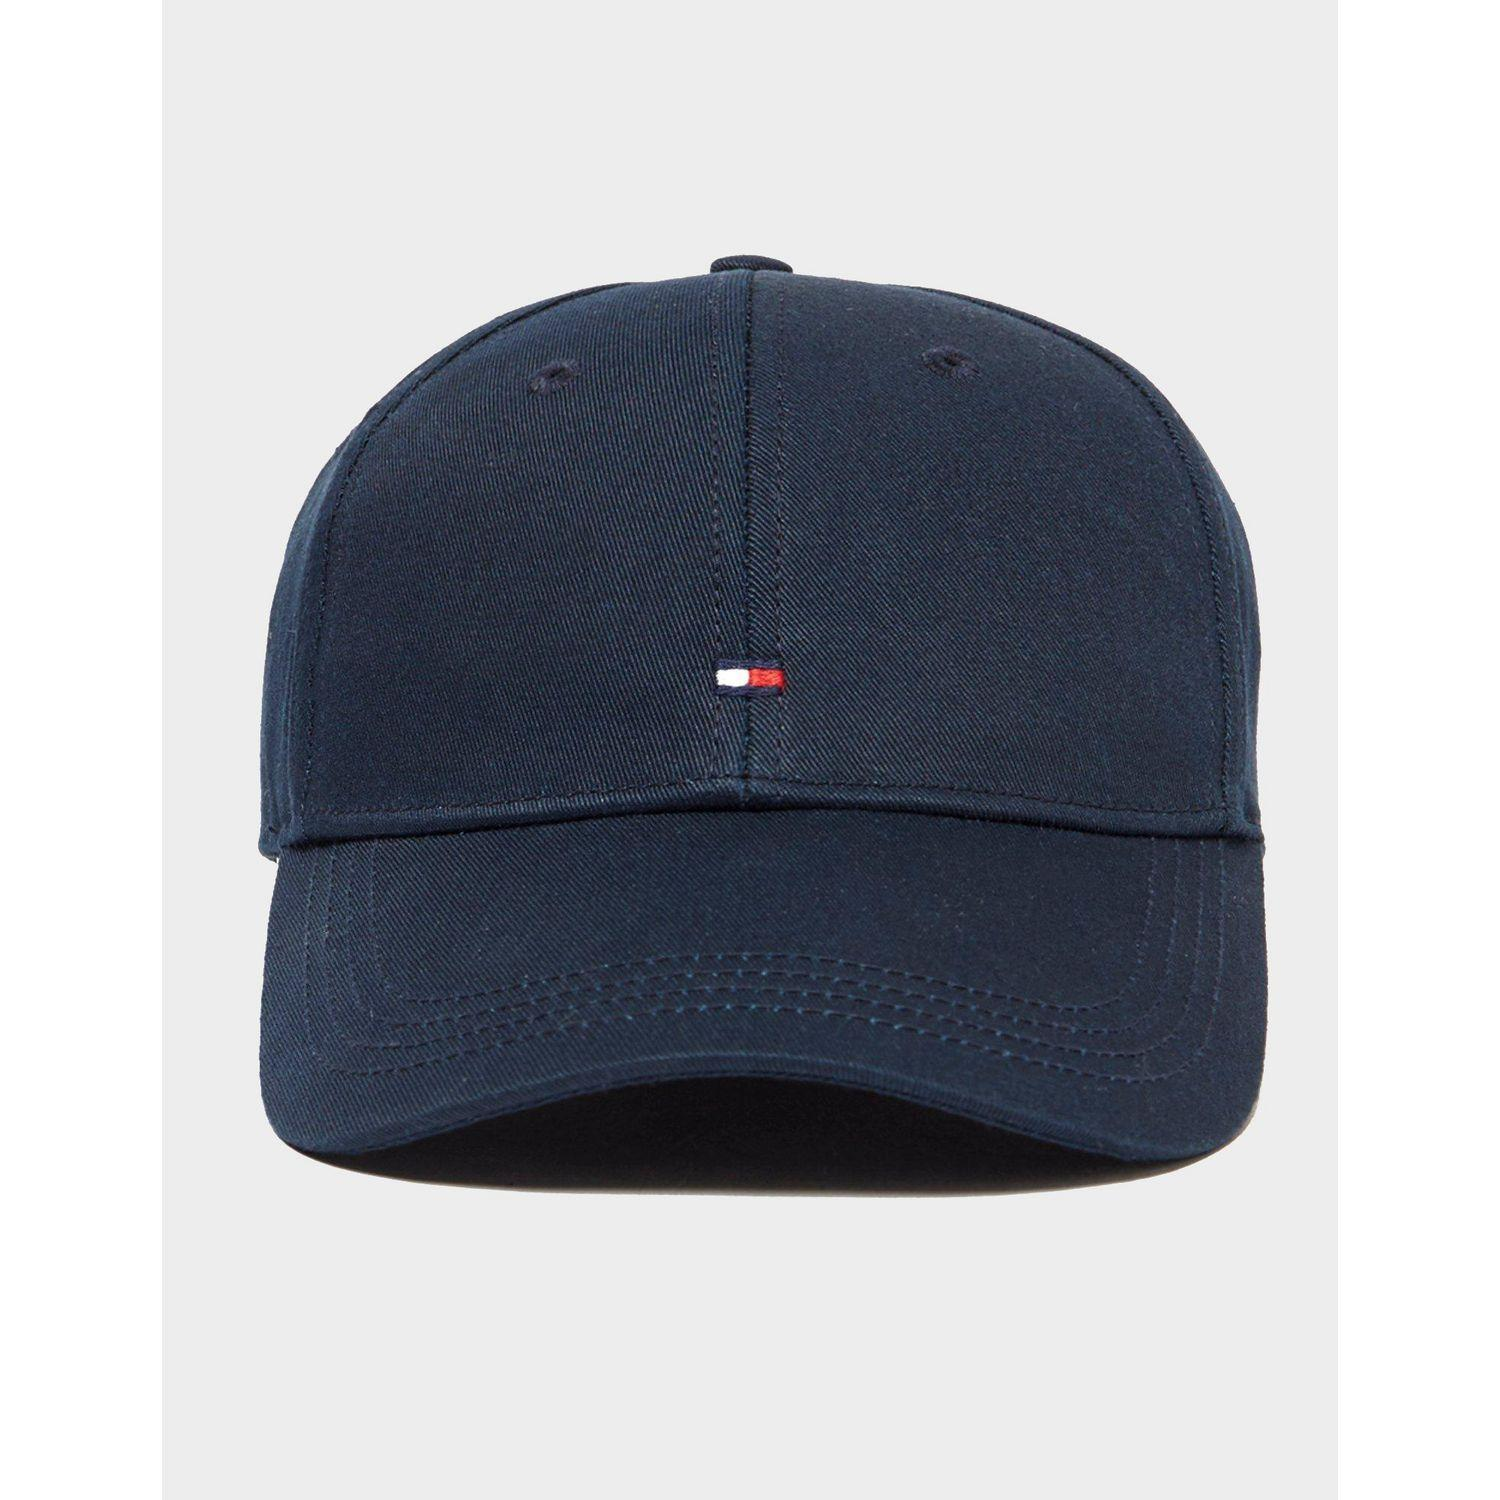 1c8e4c57 Lyst - Tommy Hilfiger Classic Flag Cap in Blue